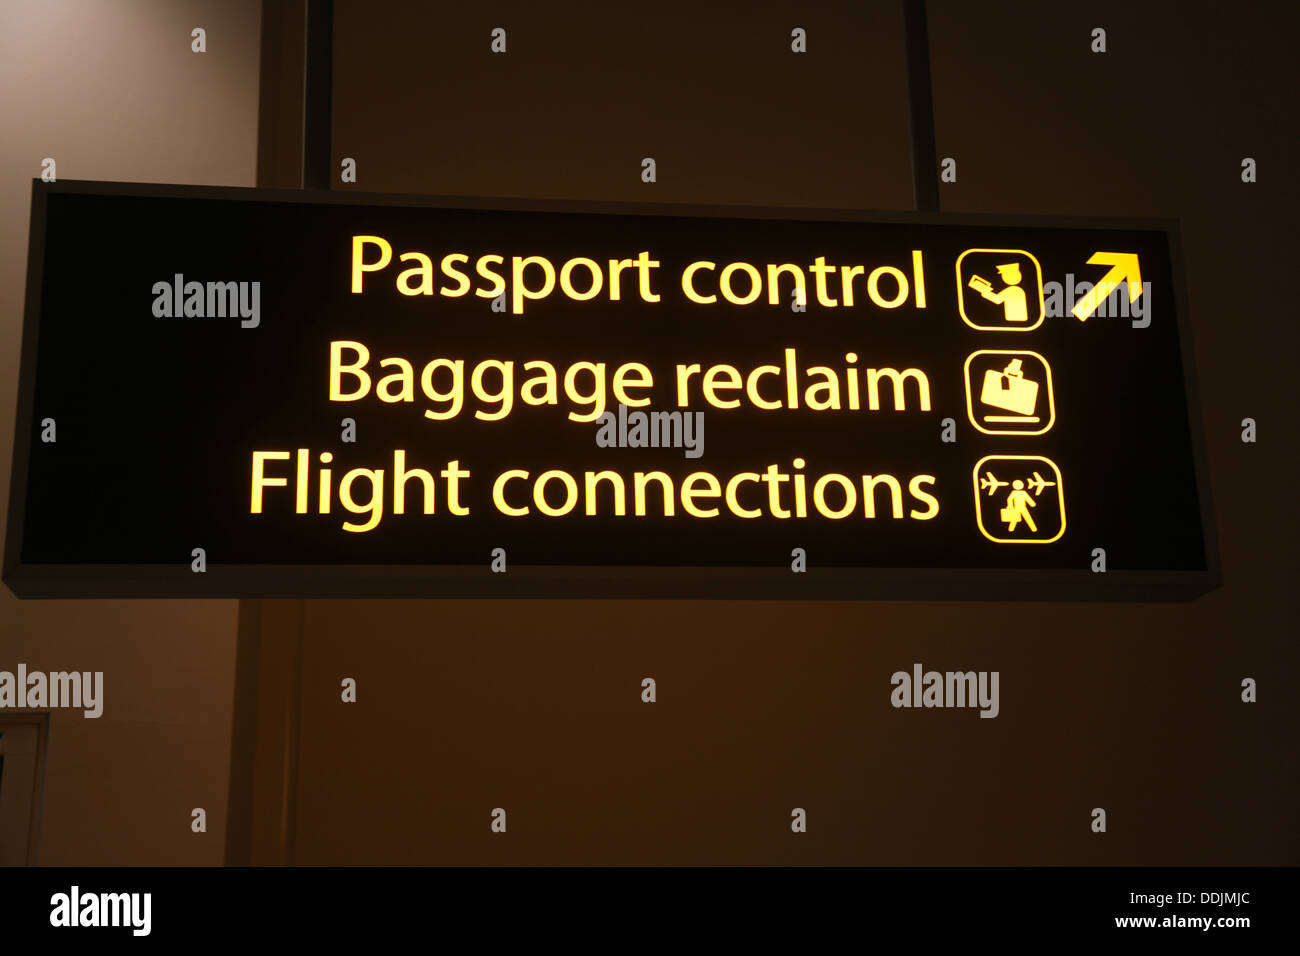 Passport Control - Stock Image